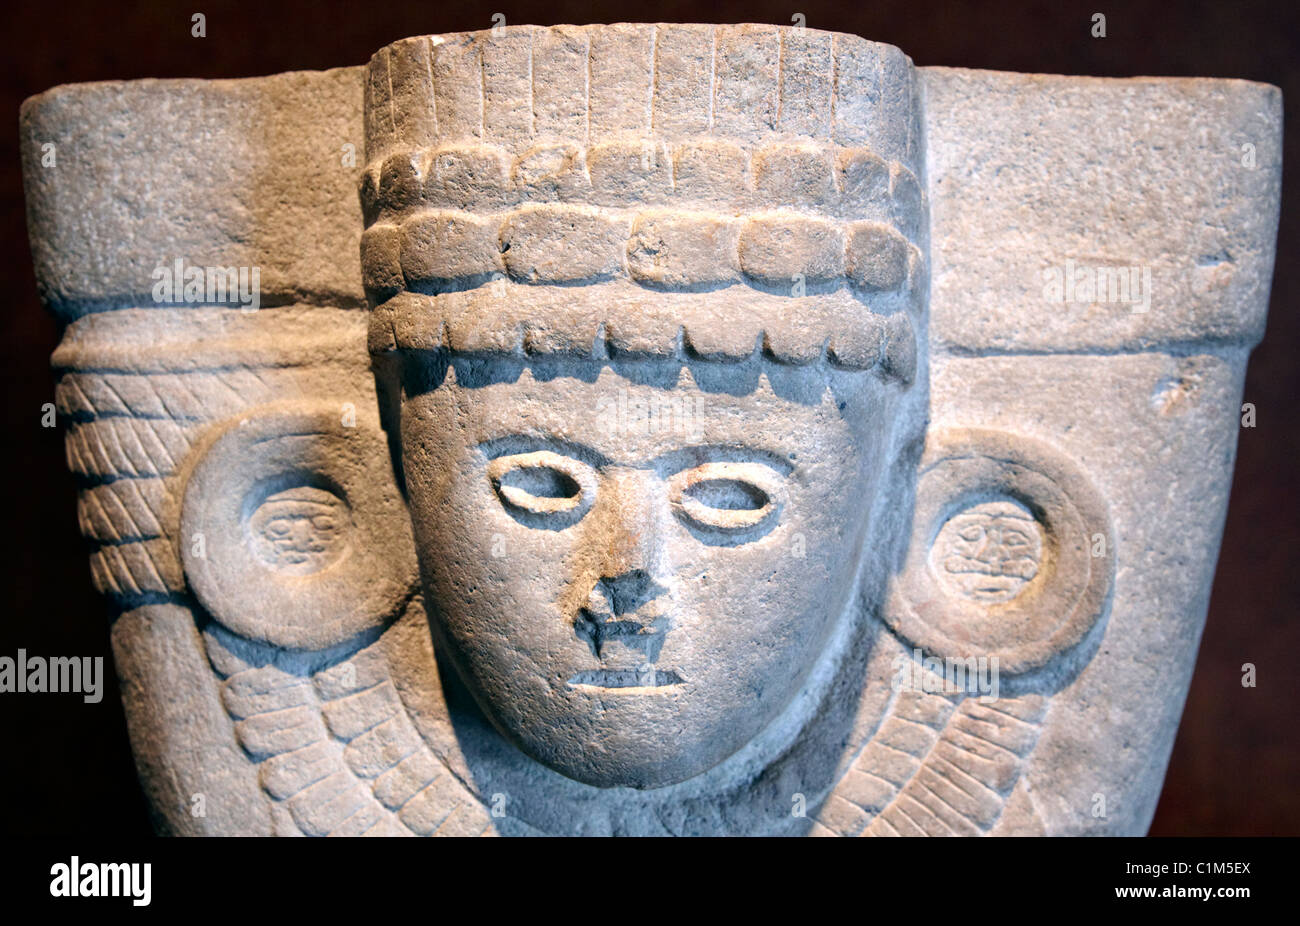 Stone Statue The Anthropological Museum  Mexico City Mexico - Stock Image